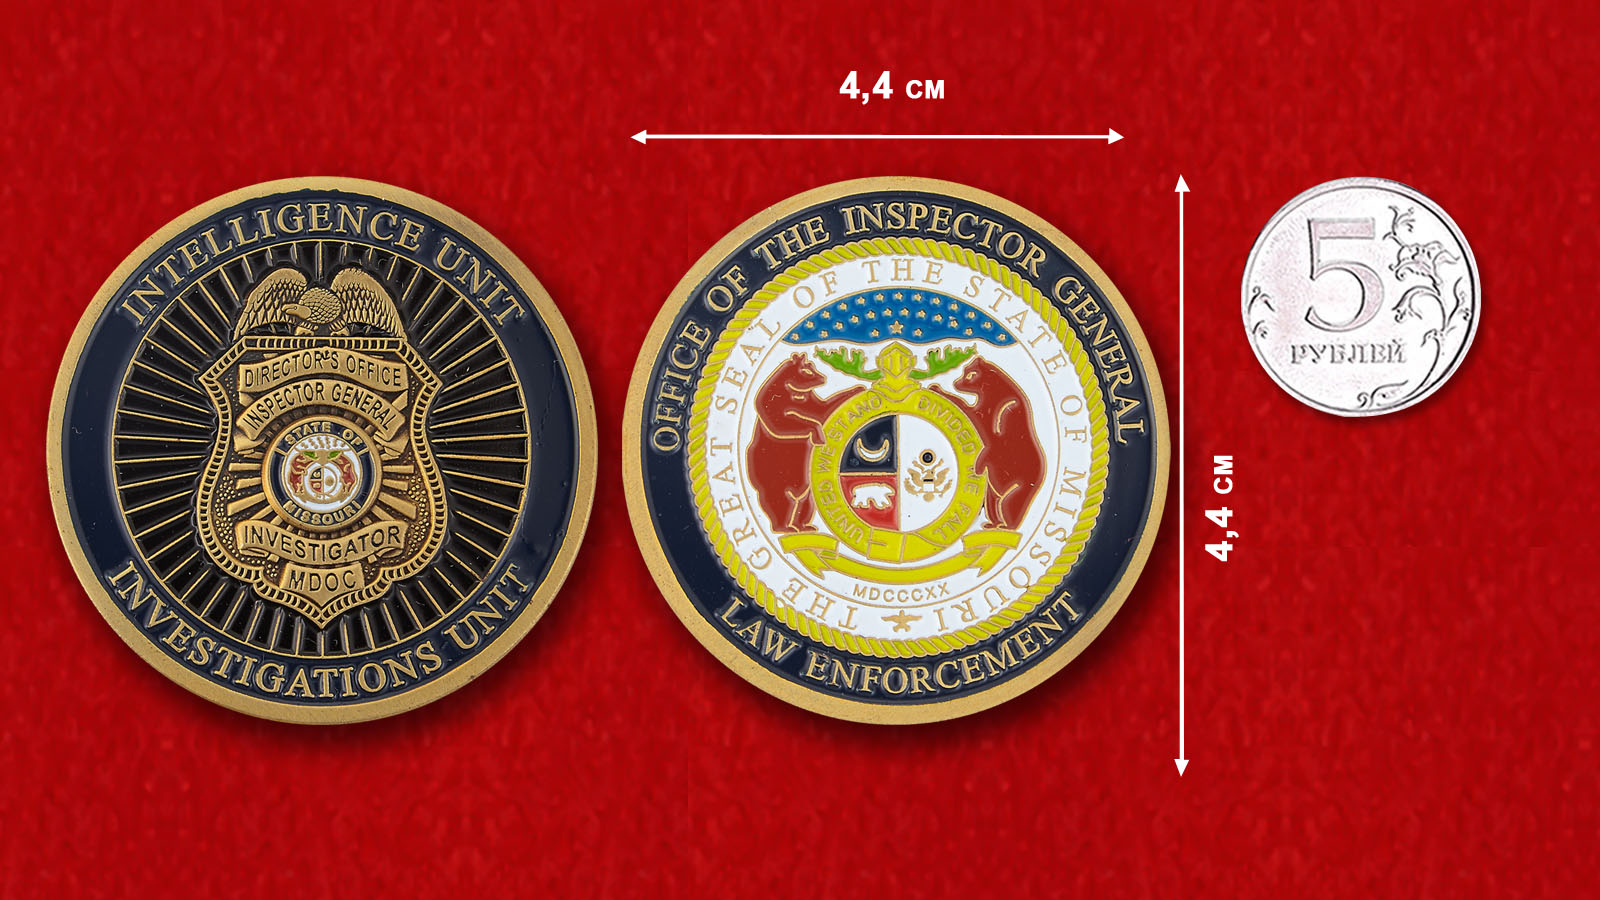 The Inspector General Enforcement Missouri Challenge Coin - comparative size